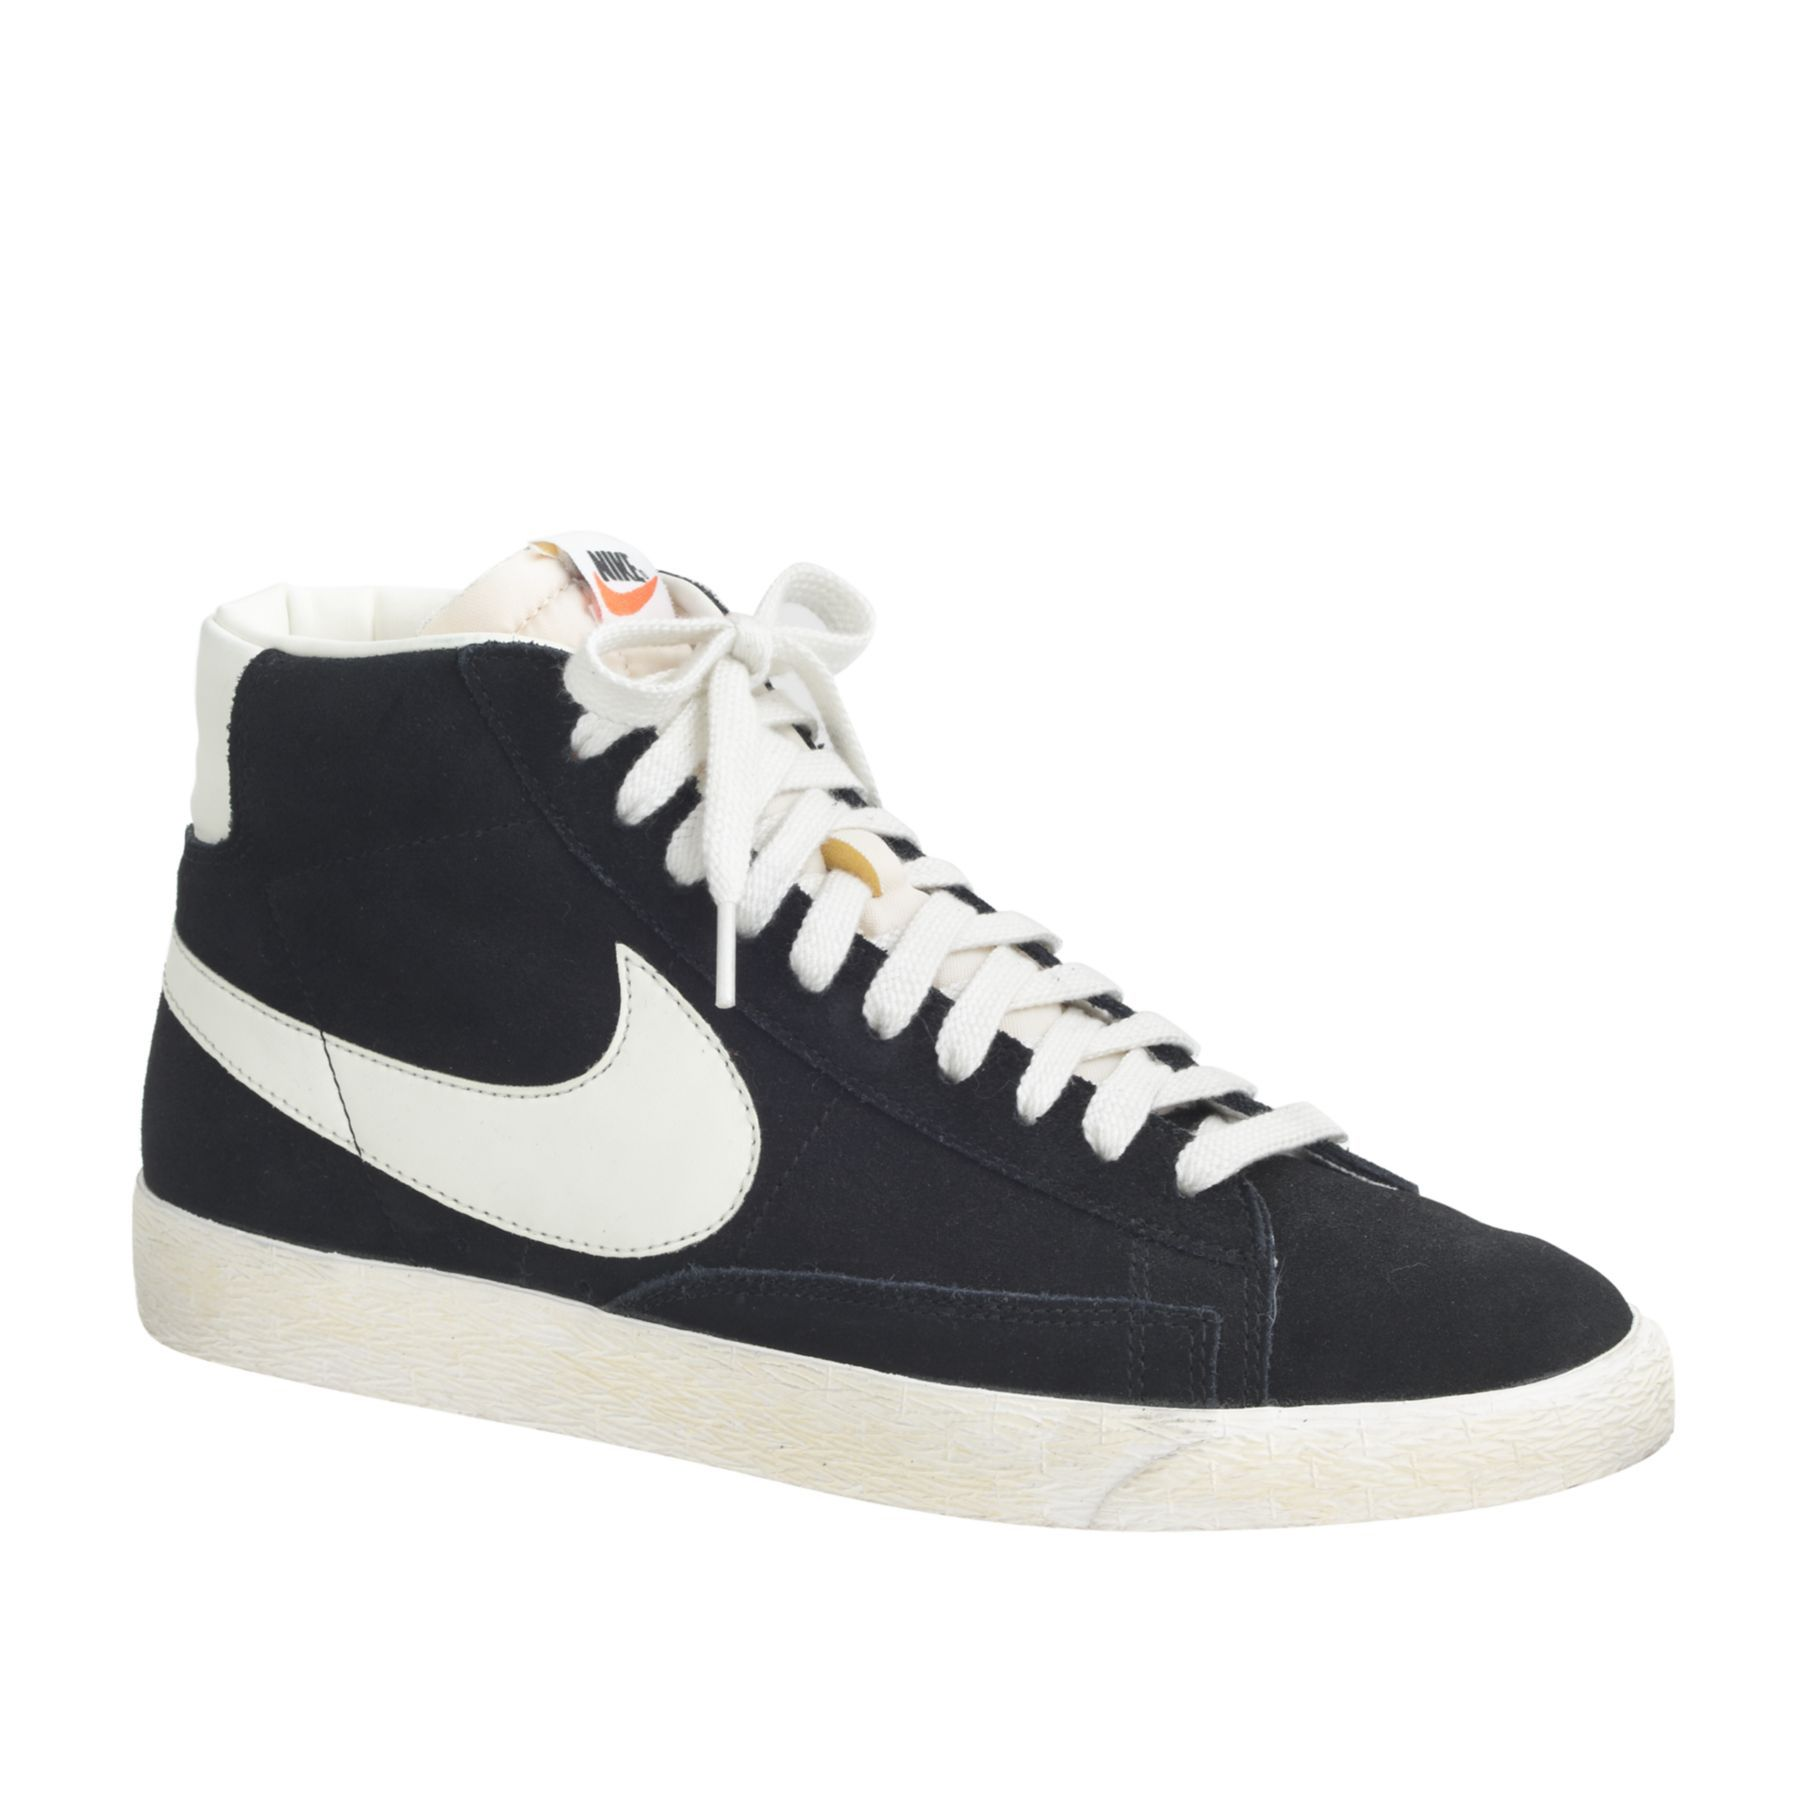 b376fd051c6 Men s Nike Blazer high suede vintage sneakers in black sail at J.Crew.